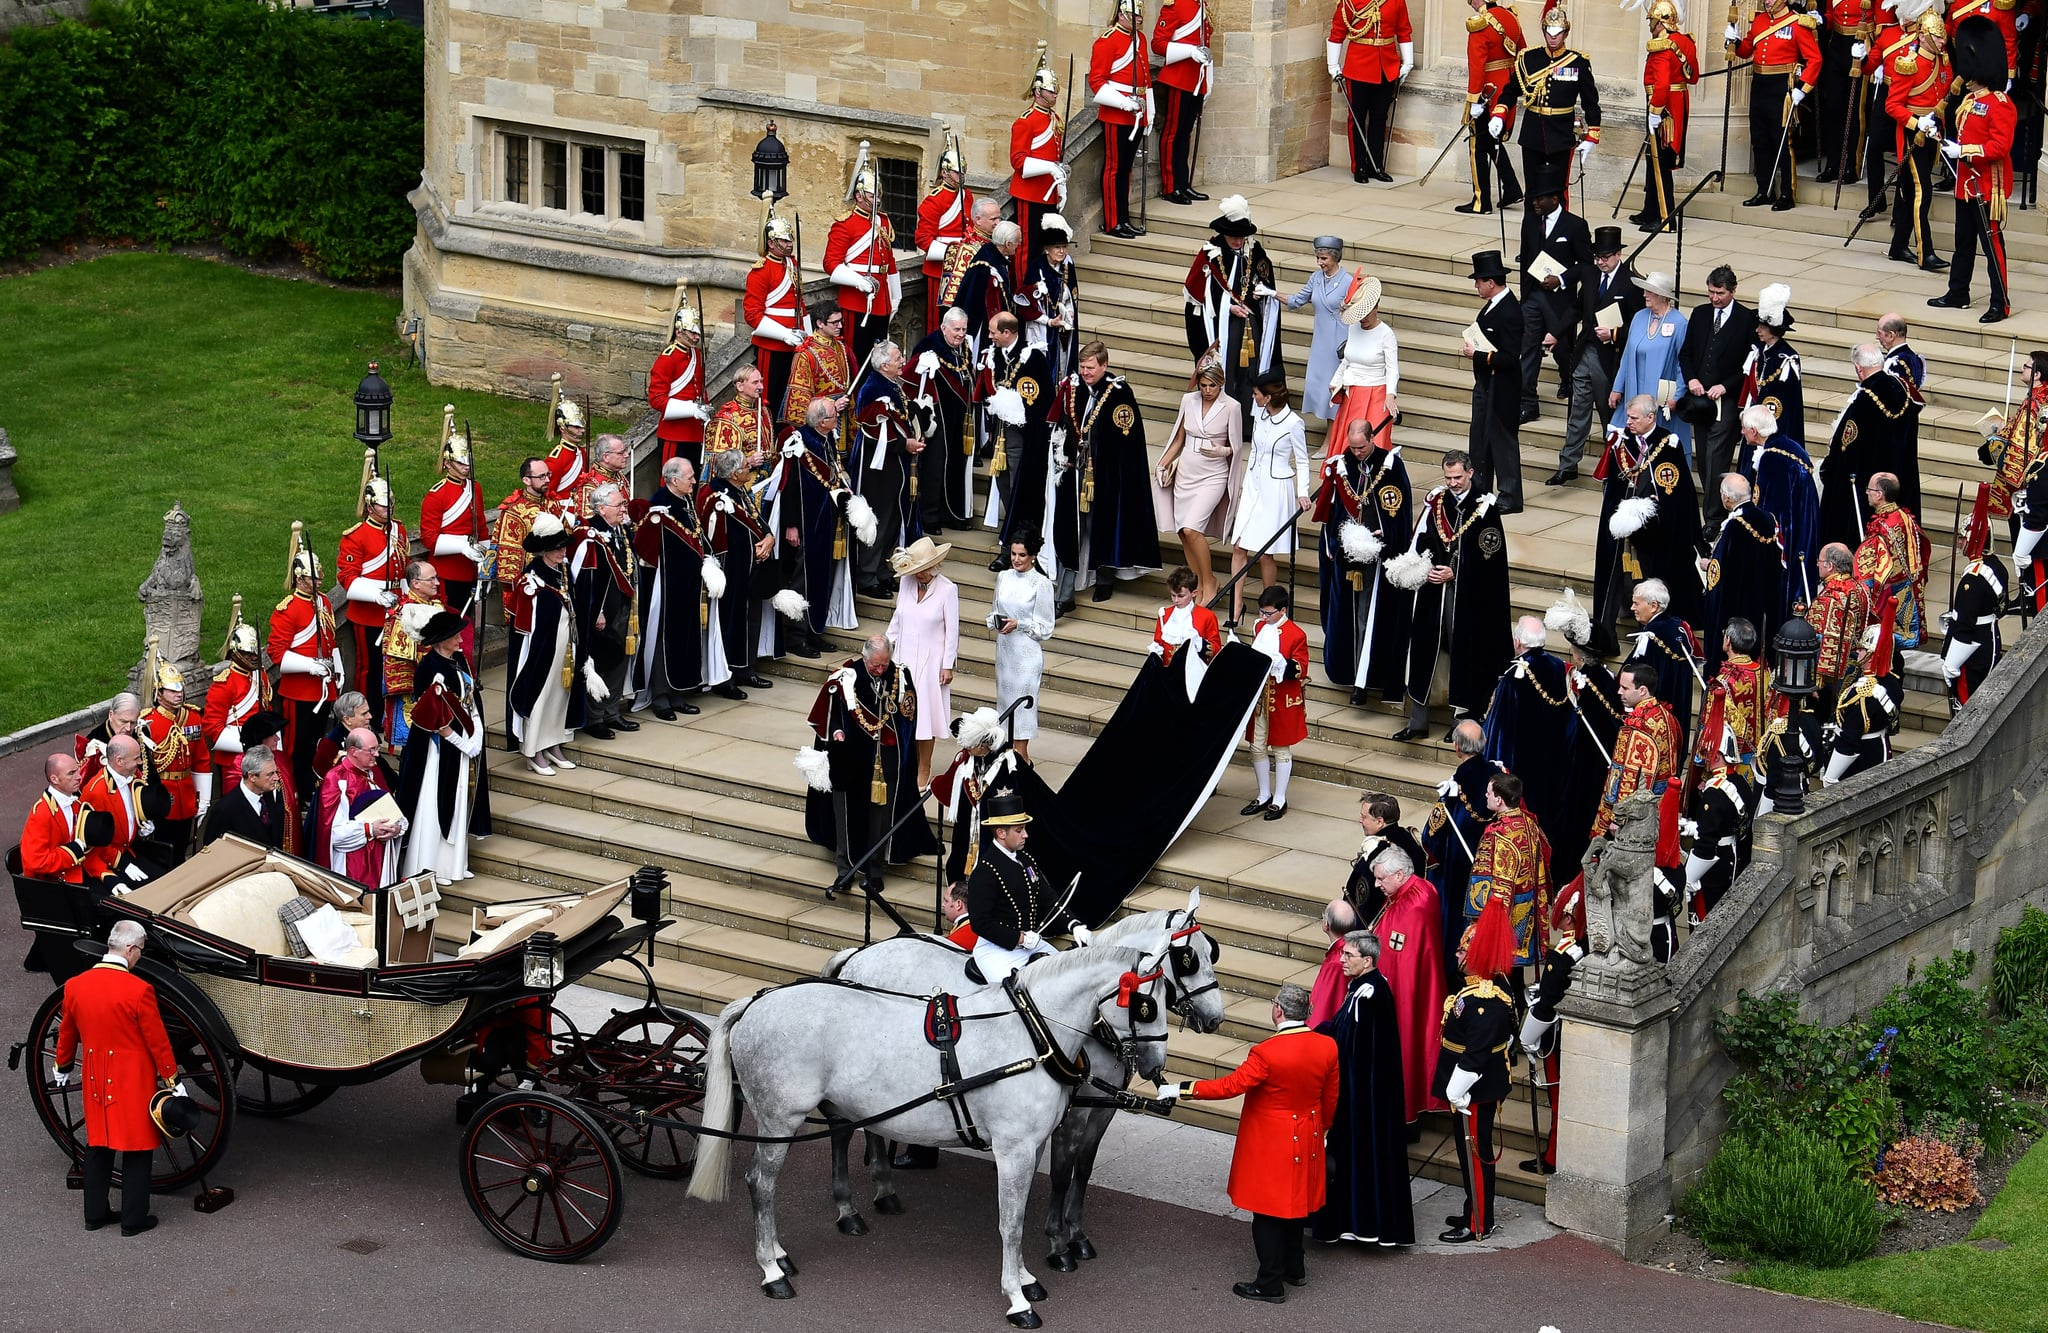 WINDSOR, ENGLAND - JUNE 17: King Willem-Alexander of the Netherlands, Queen Maxima of the Netherlands, King Felipe VI of Spain and Queen Letizia of Spain and Queen Elizabeth II leave the Order of the Garter Service on June 17, 2019 in Windsor, England. The Order of the Garter is the senior and oldest British Order of Chivalry, founded by Edward III in 1348. The Garter ceremonial dates from 1948, when formal installation was revived by King George VI for the first time since 1805. (Photo by Ben Stansall - WPA Pool/Getty Images)